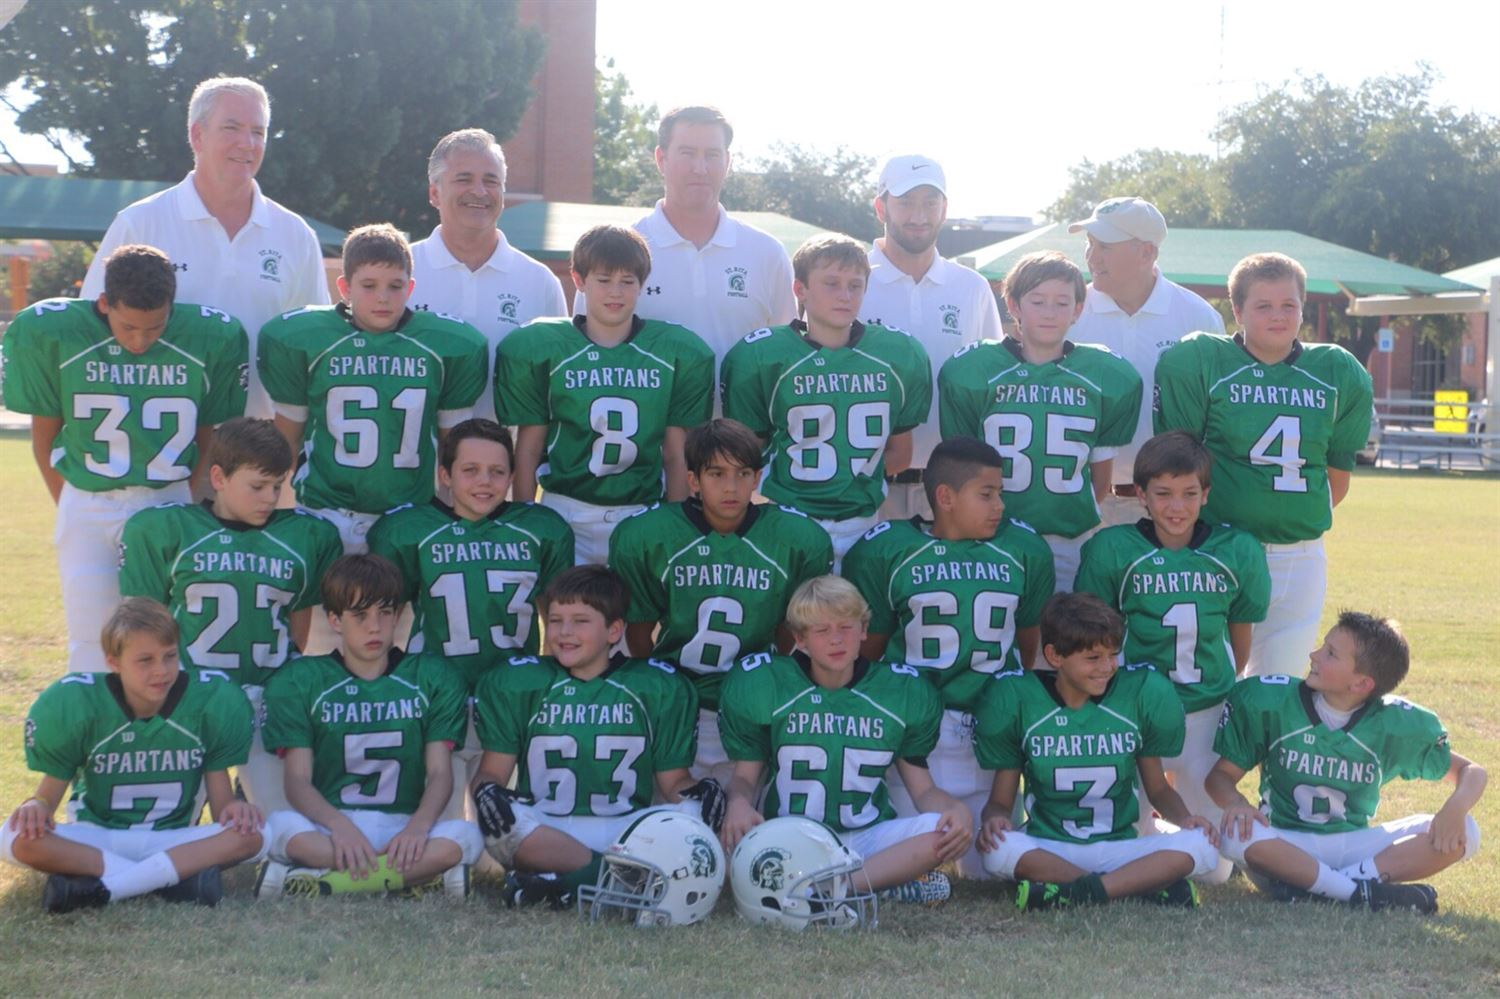 george laughlin Youth Teams - St Rita Spartans